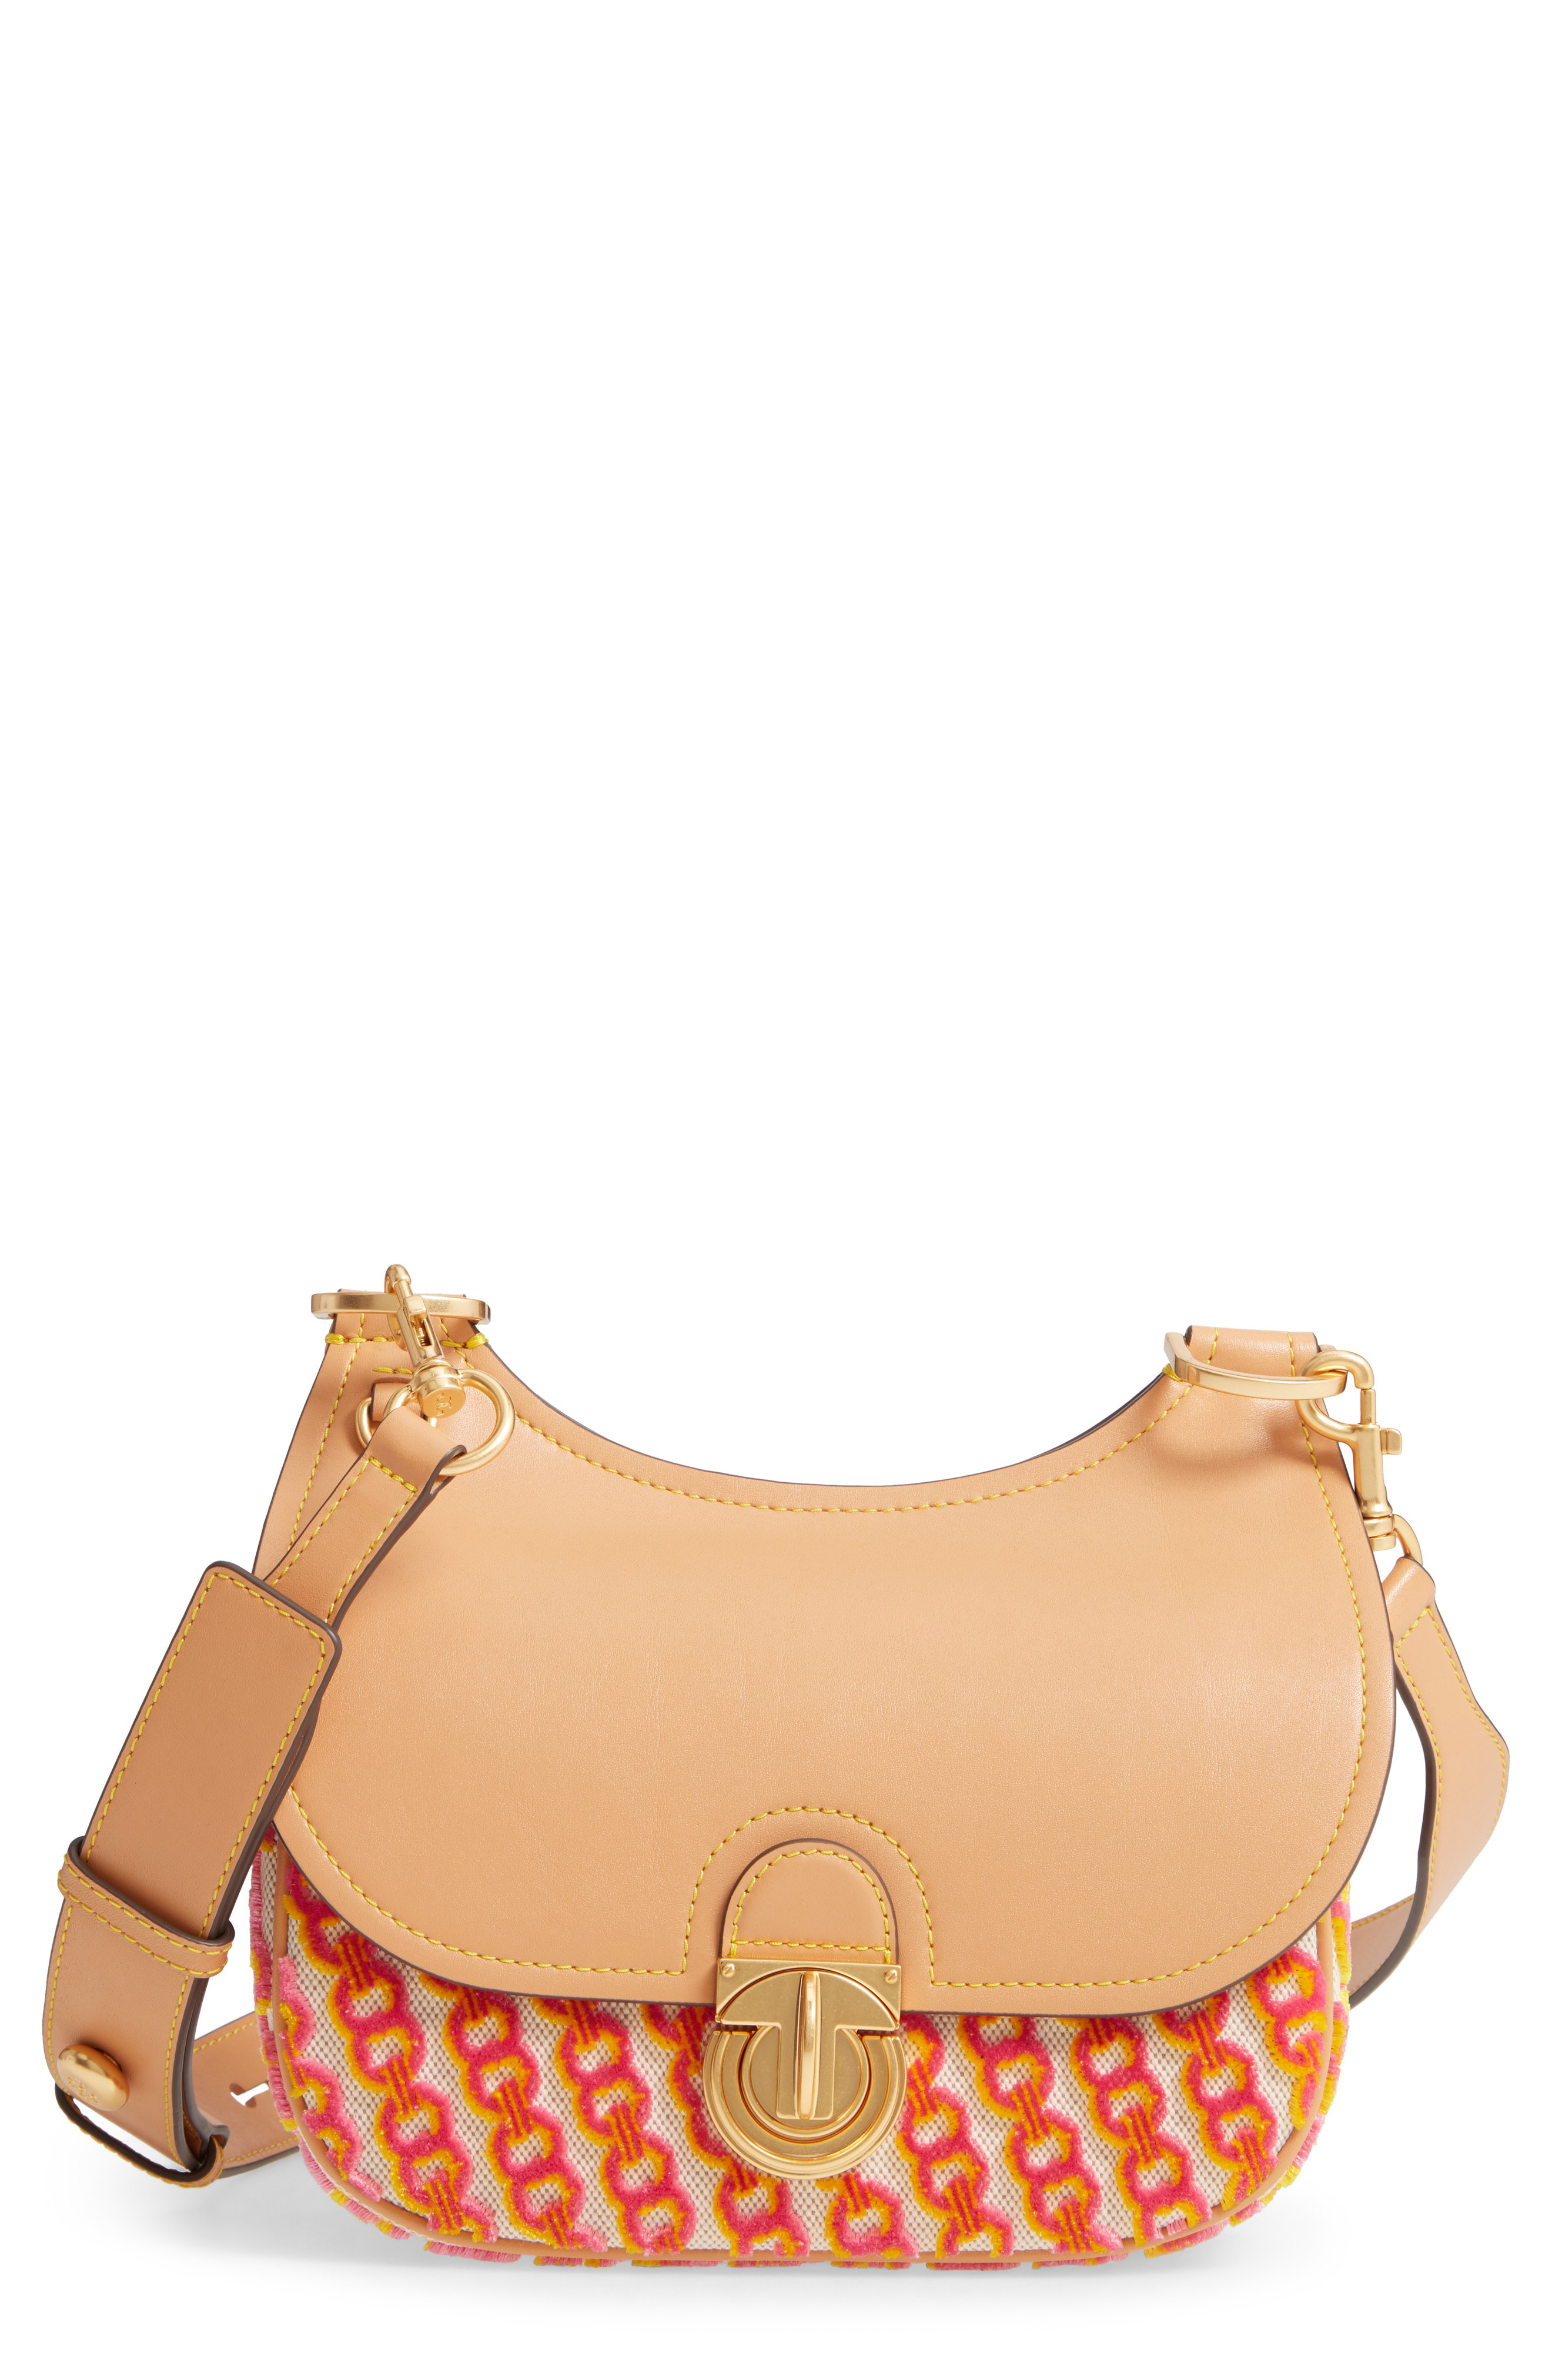 8ff75762d85 Tory Burch Small James Leather   Fil CoupÉ Saddle Bag In Pink Gemini Flocked